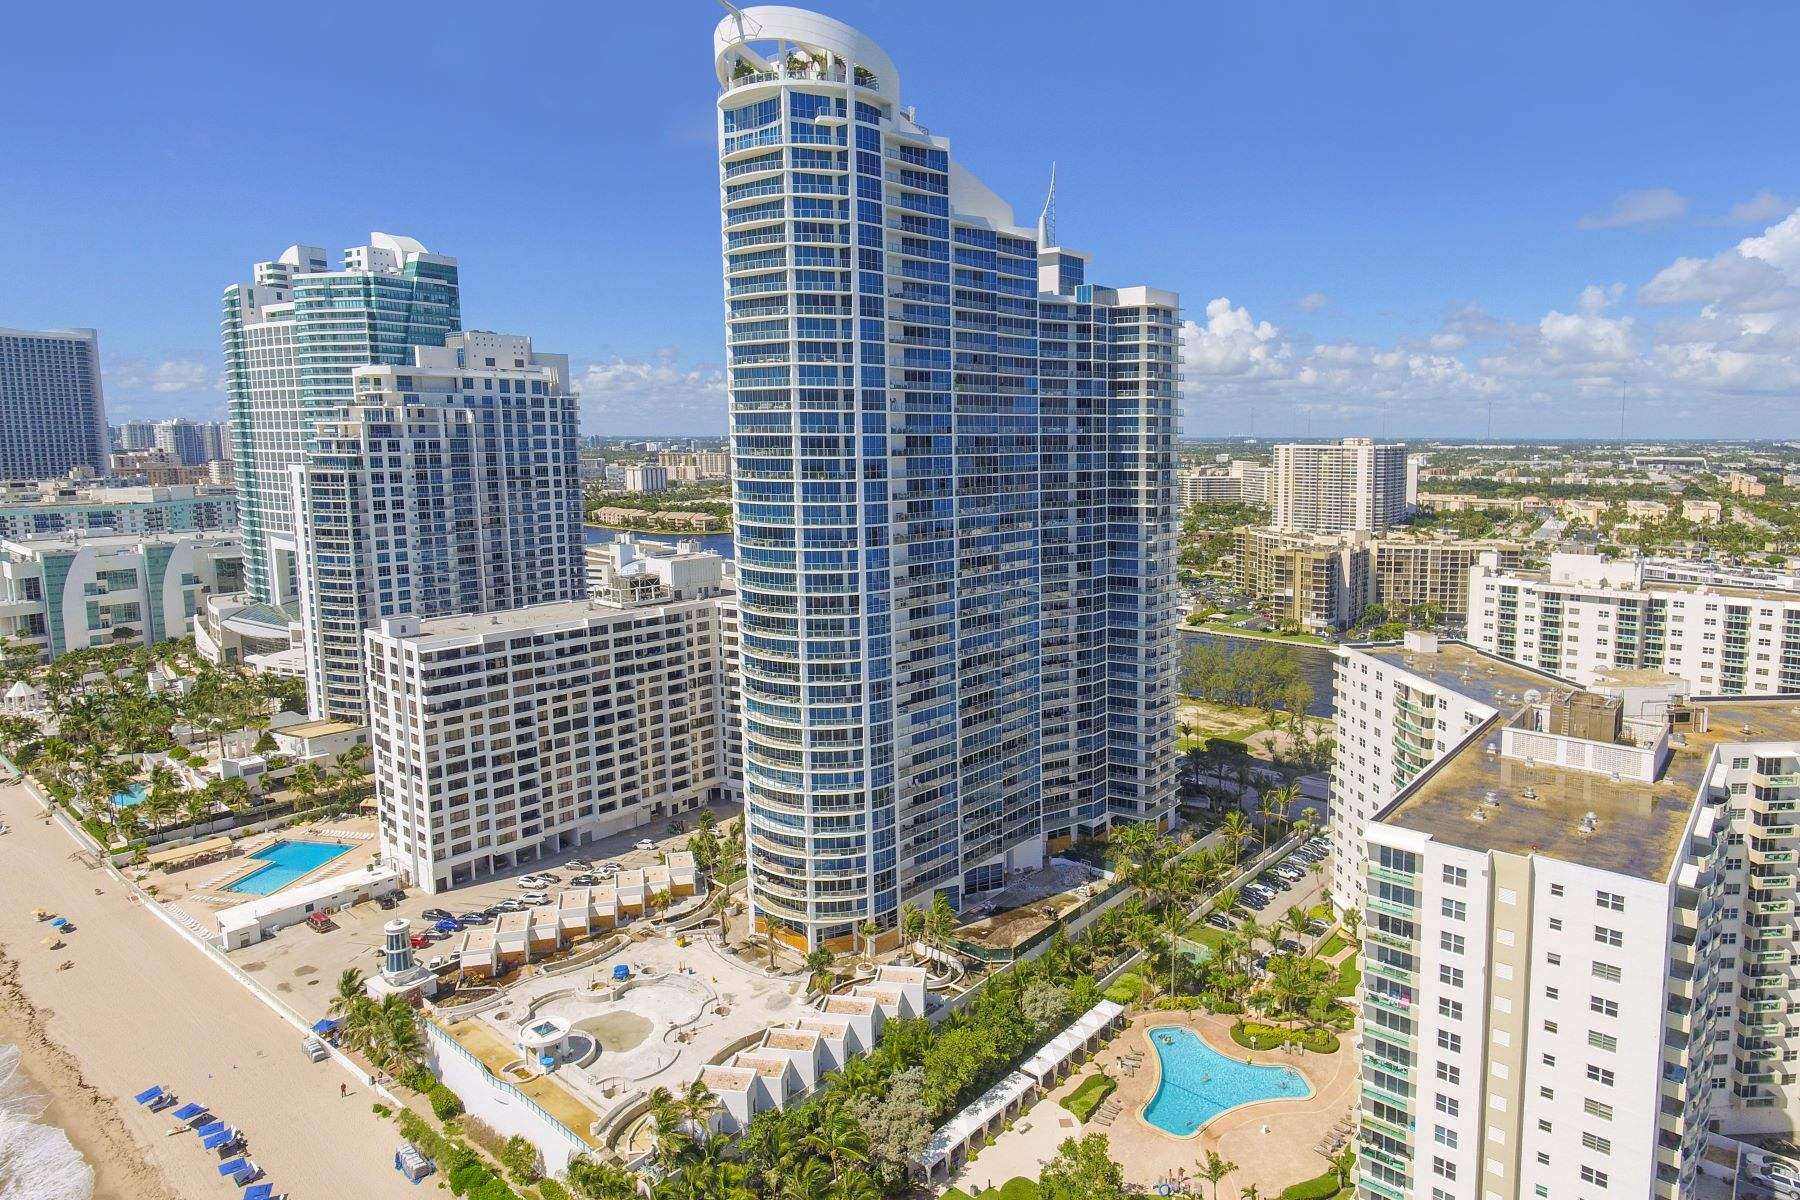 Condominium for Sale at 3101 S Ocean Dr #502 3101 S Ocean Dr 502 Hollywood, Florida 33019 United States